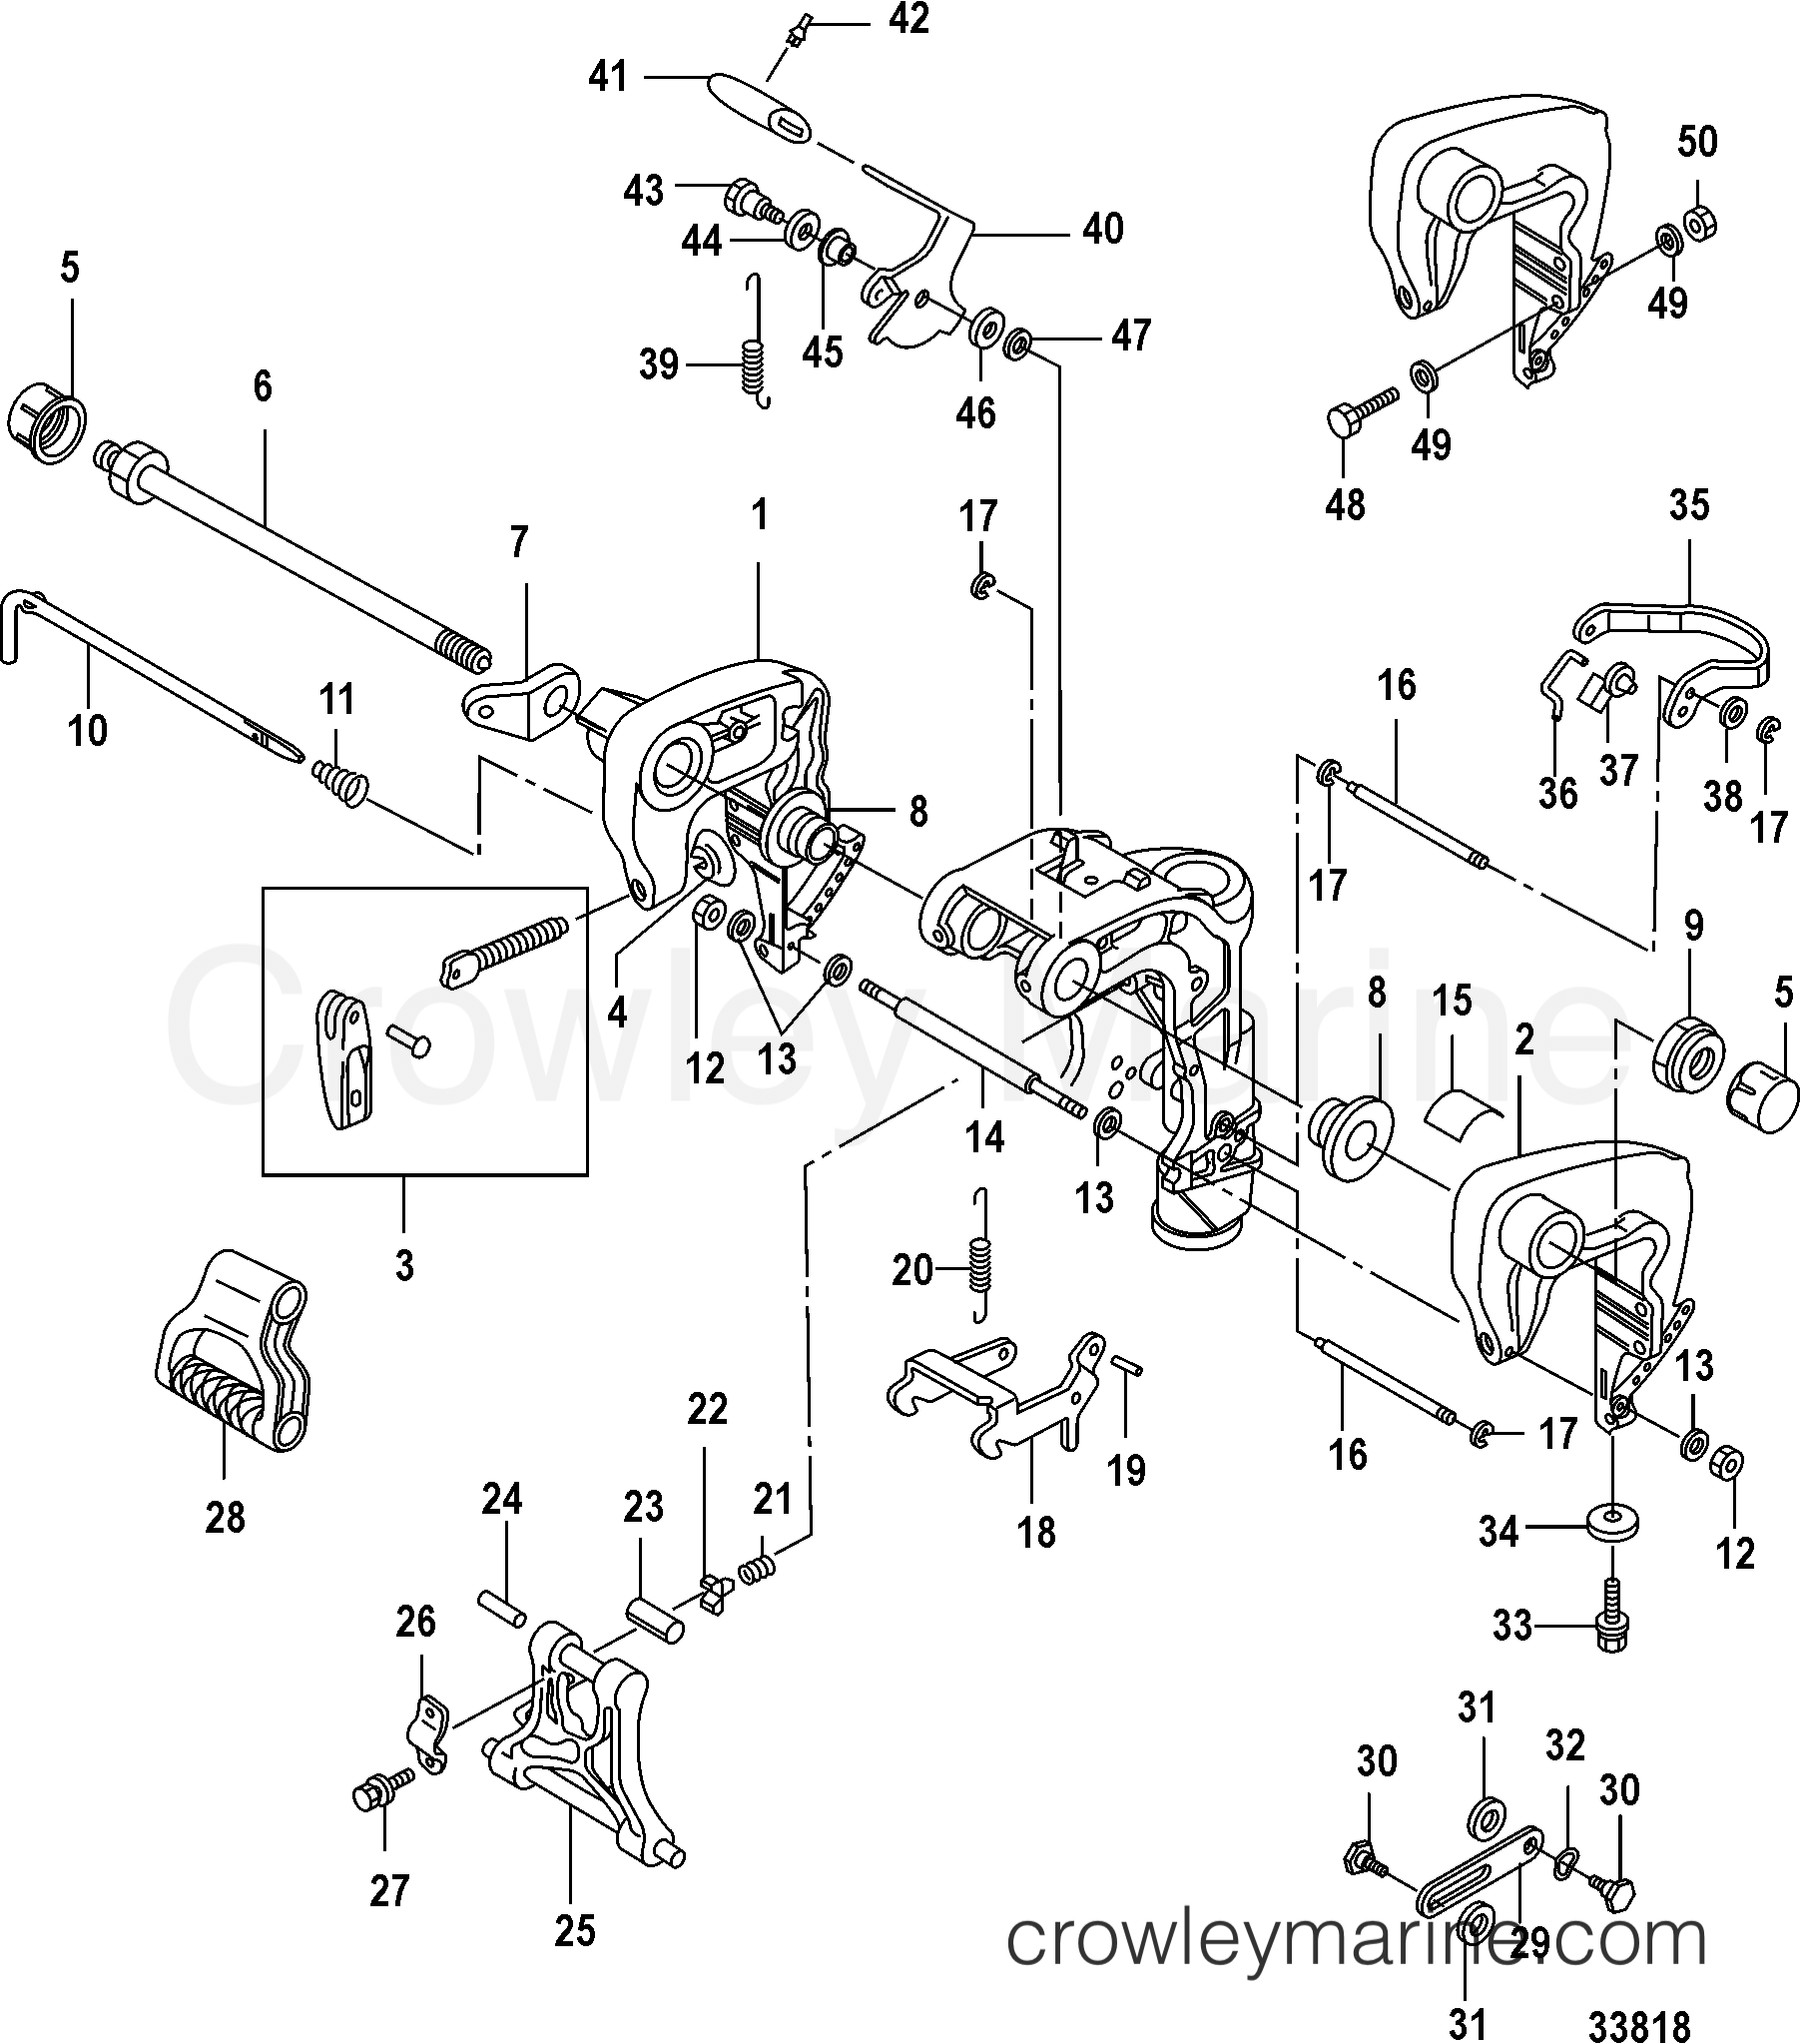 Clamp Brackets Manual Tilt